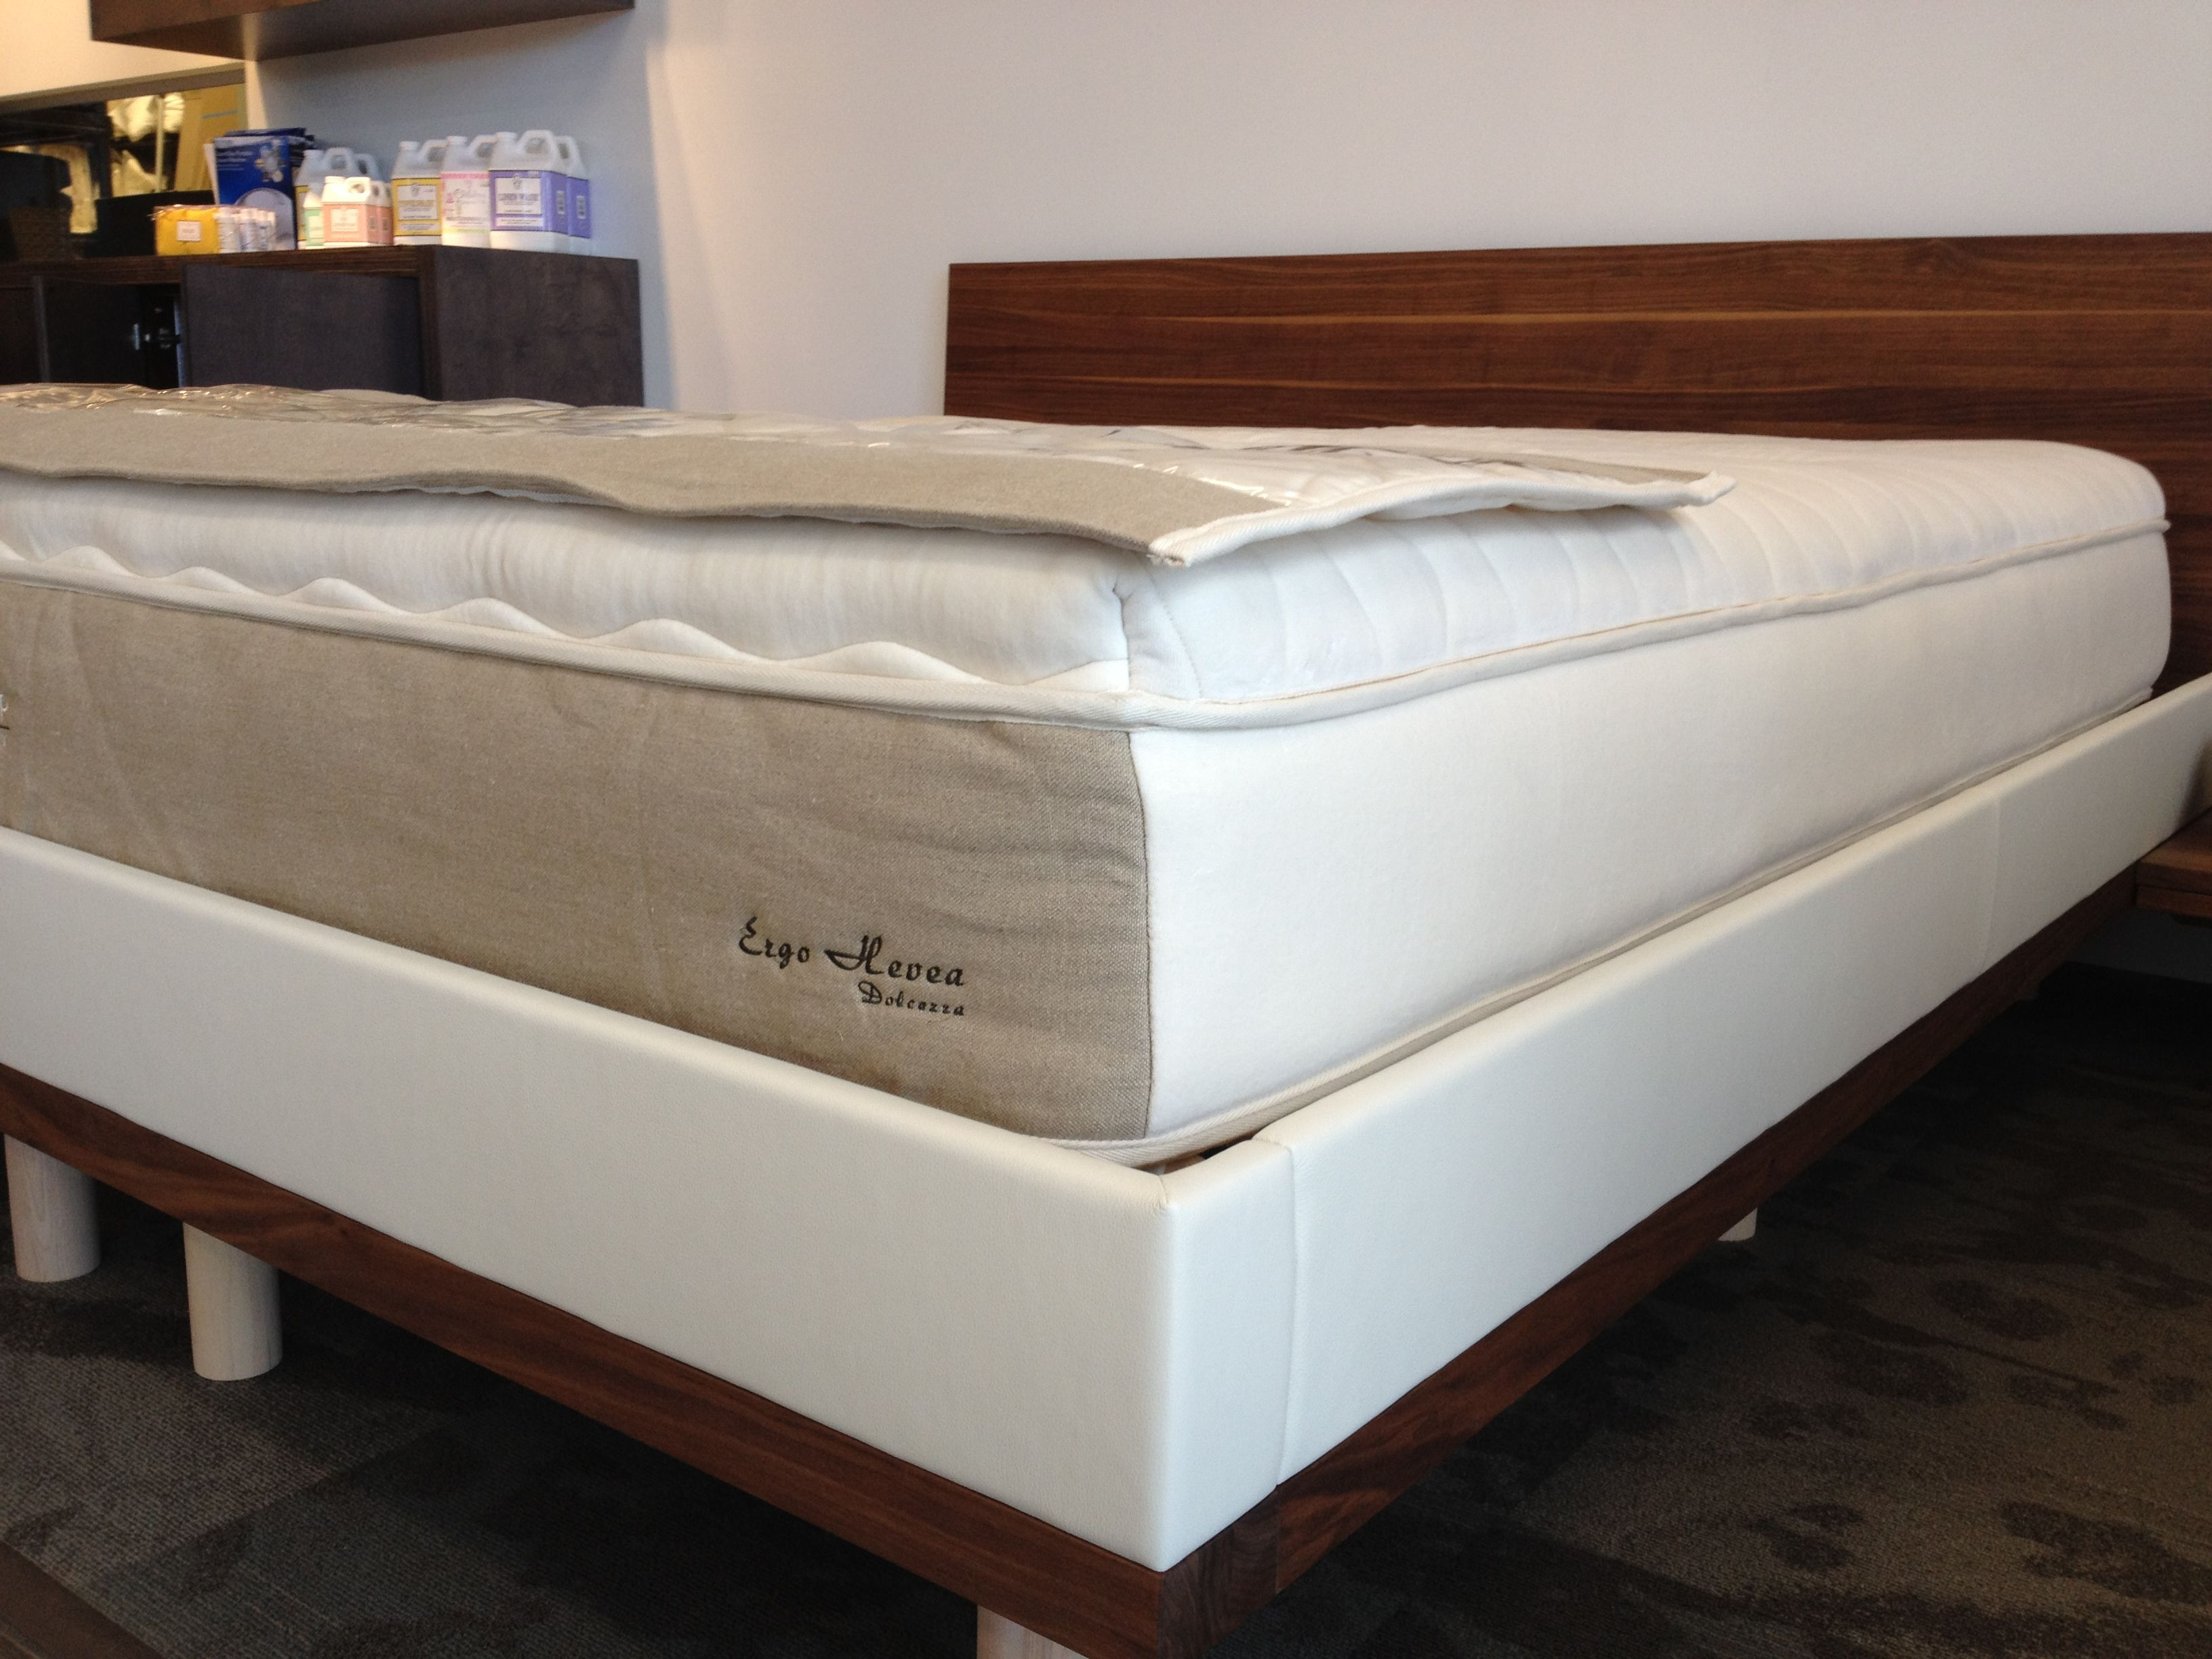 the riletto platform bed wnight stands by team  on display at  - the riletto platform bed wnight stands by team  on display at the mattress